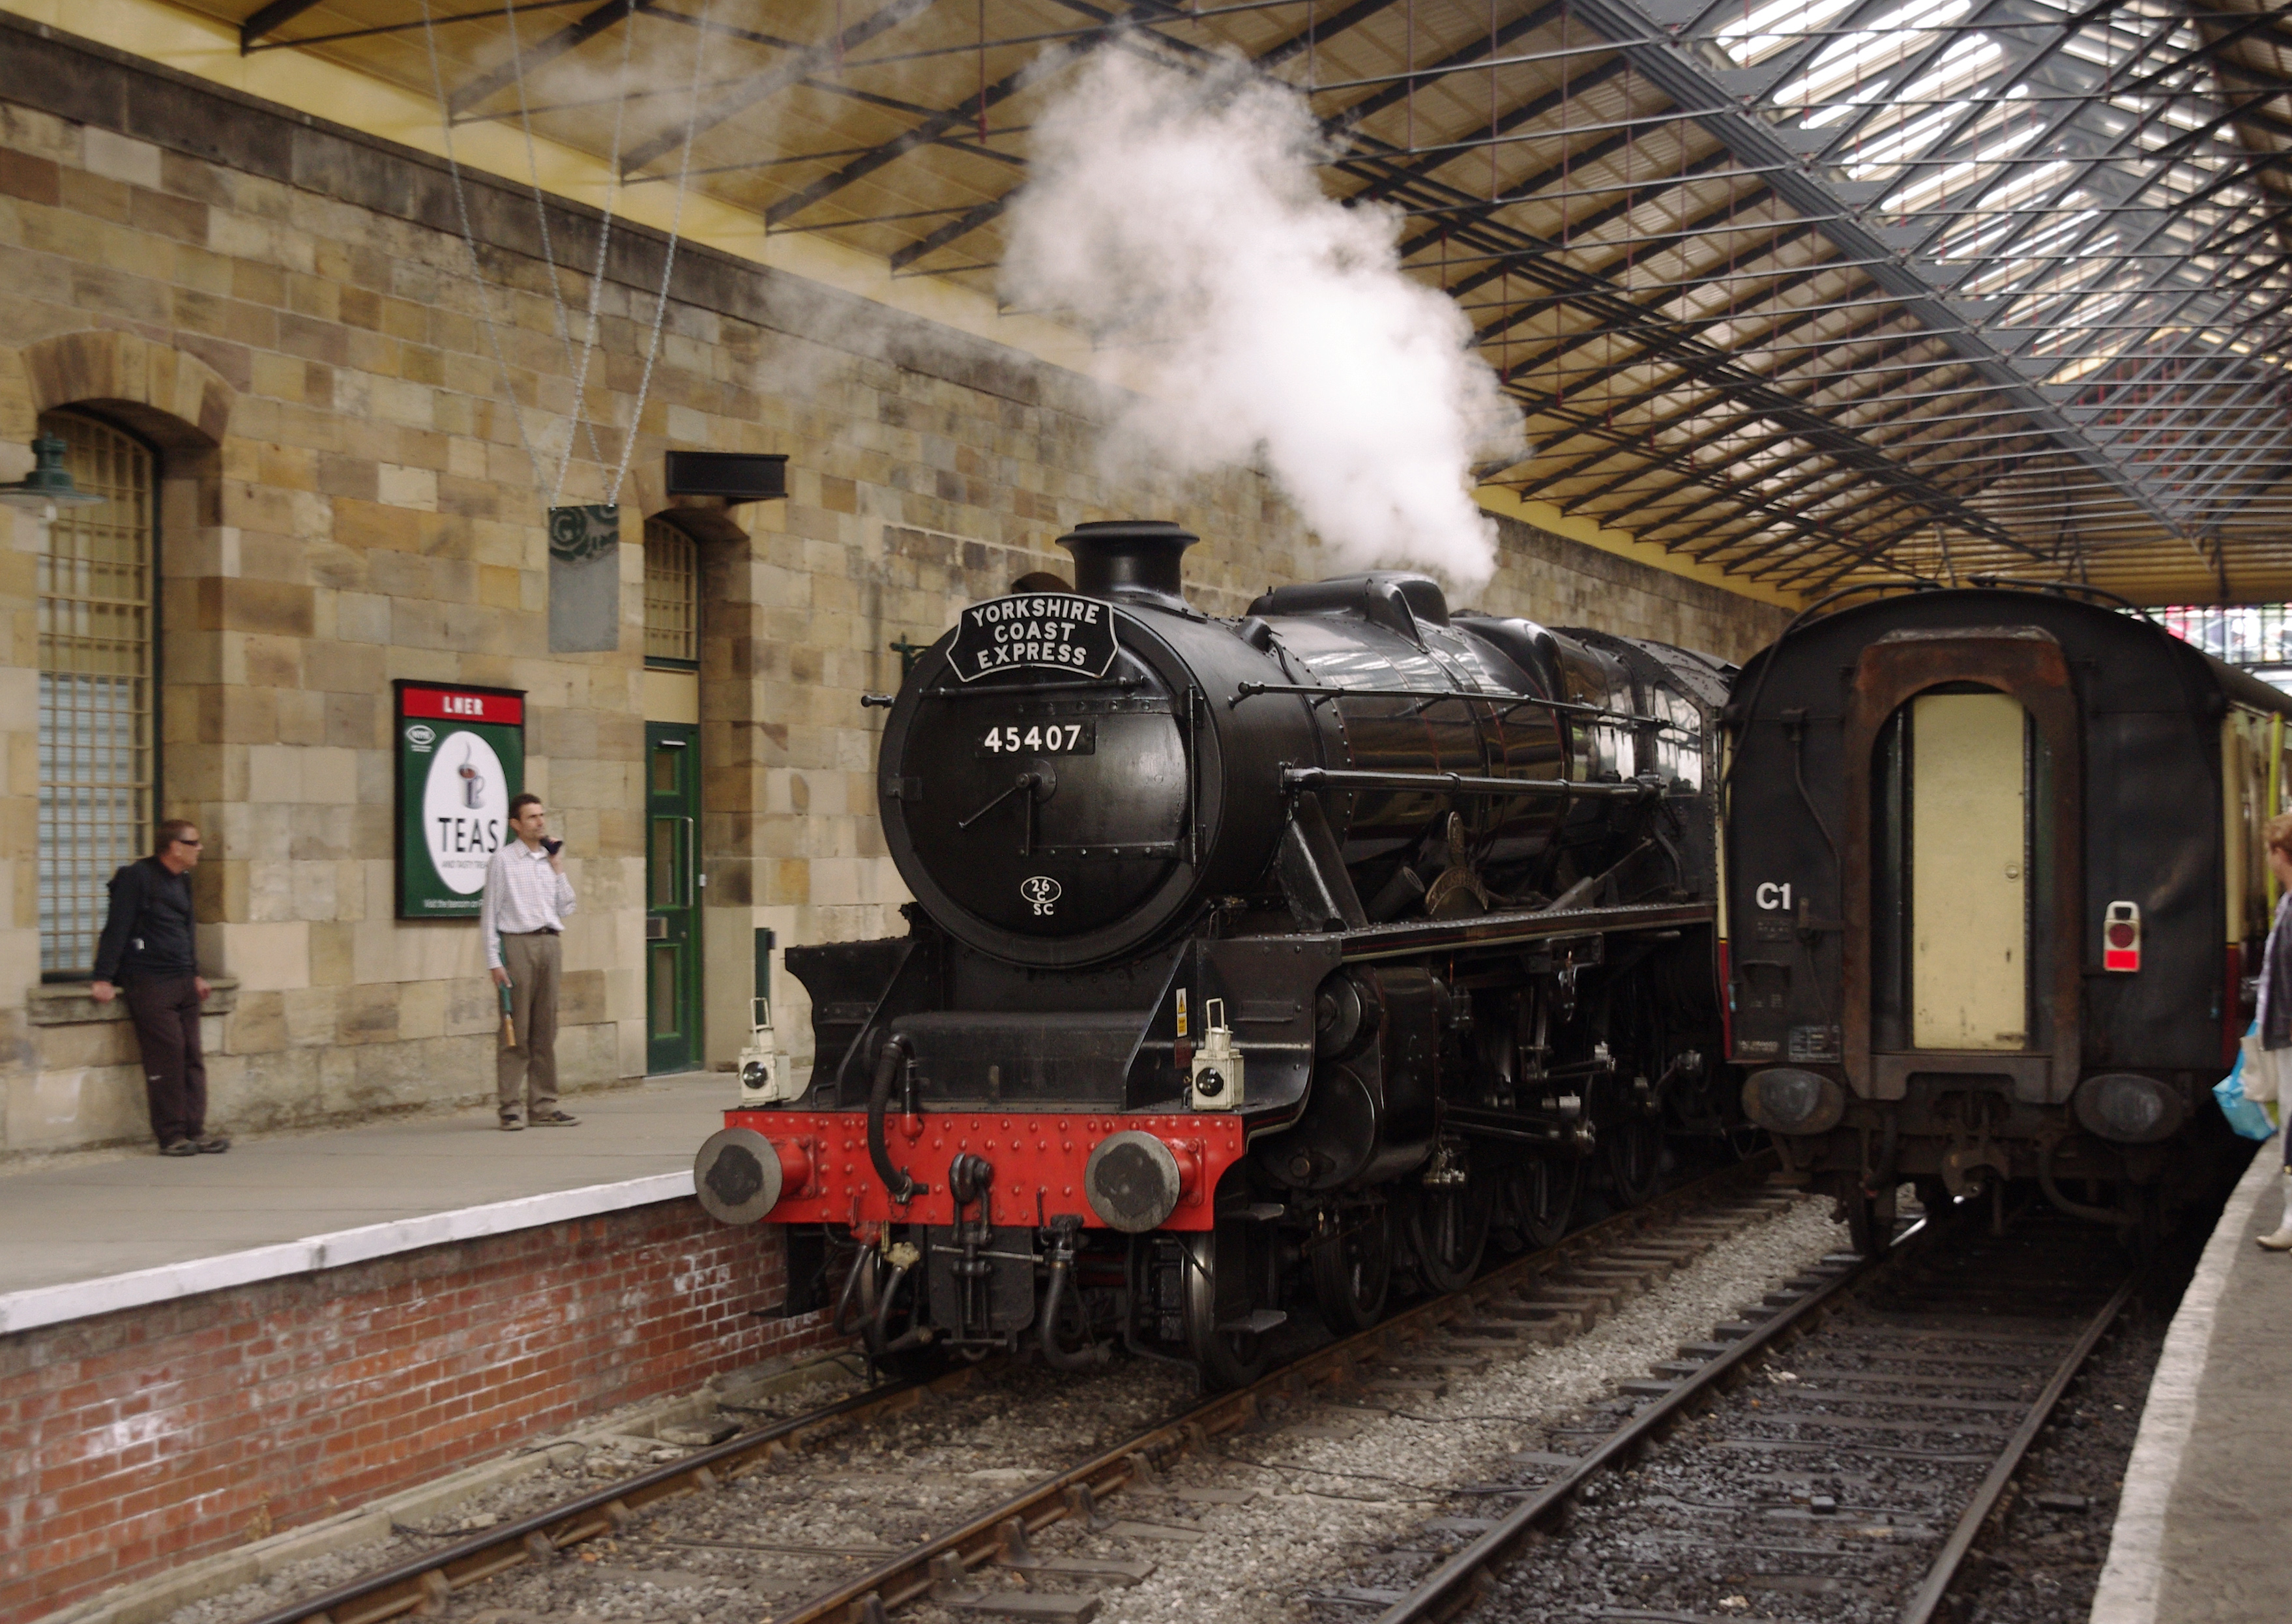 10 reasons to choose NYMR: